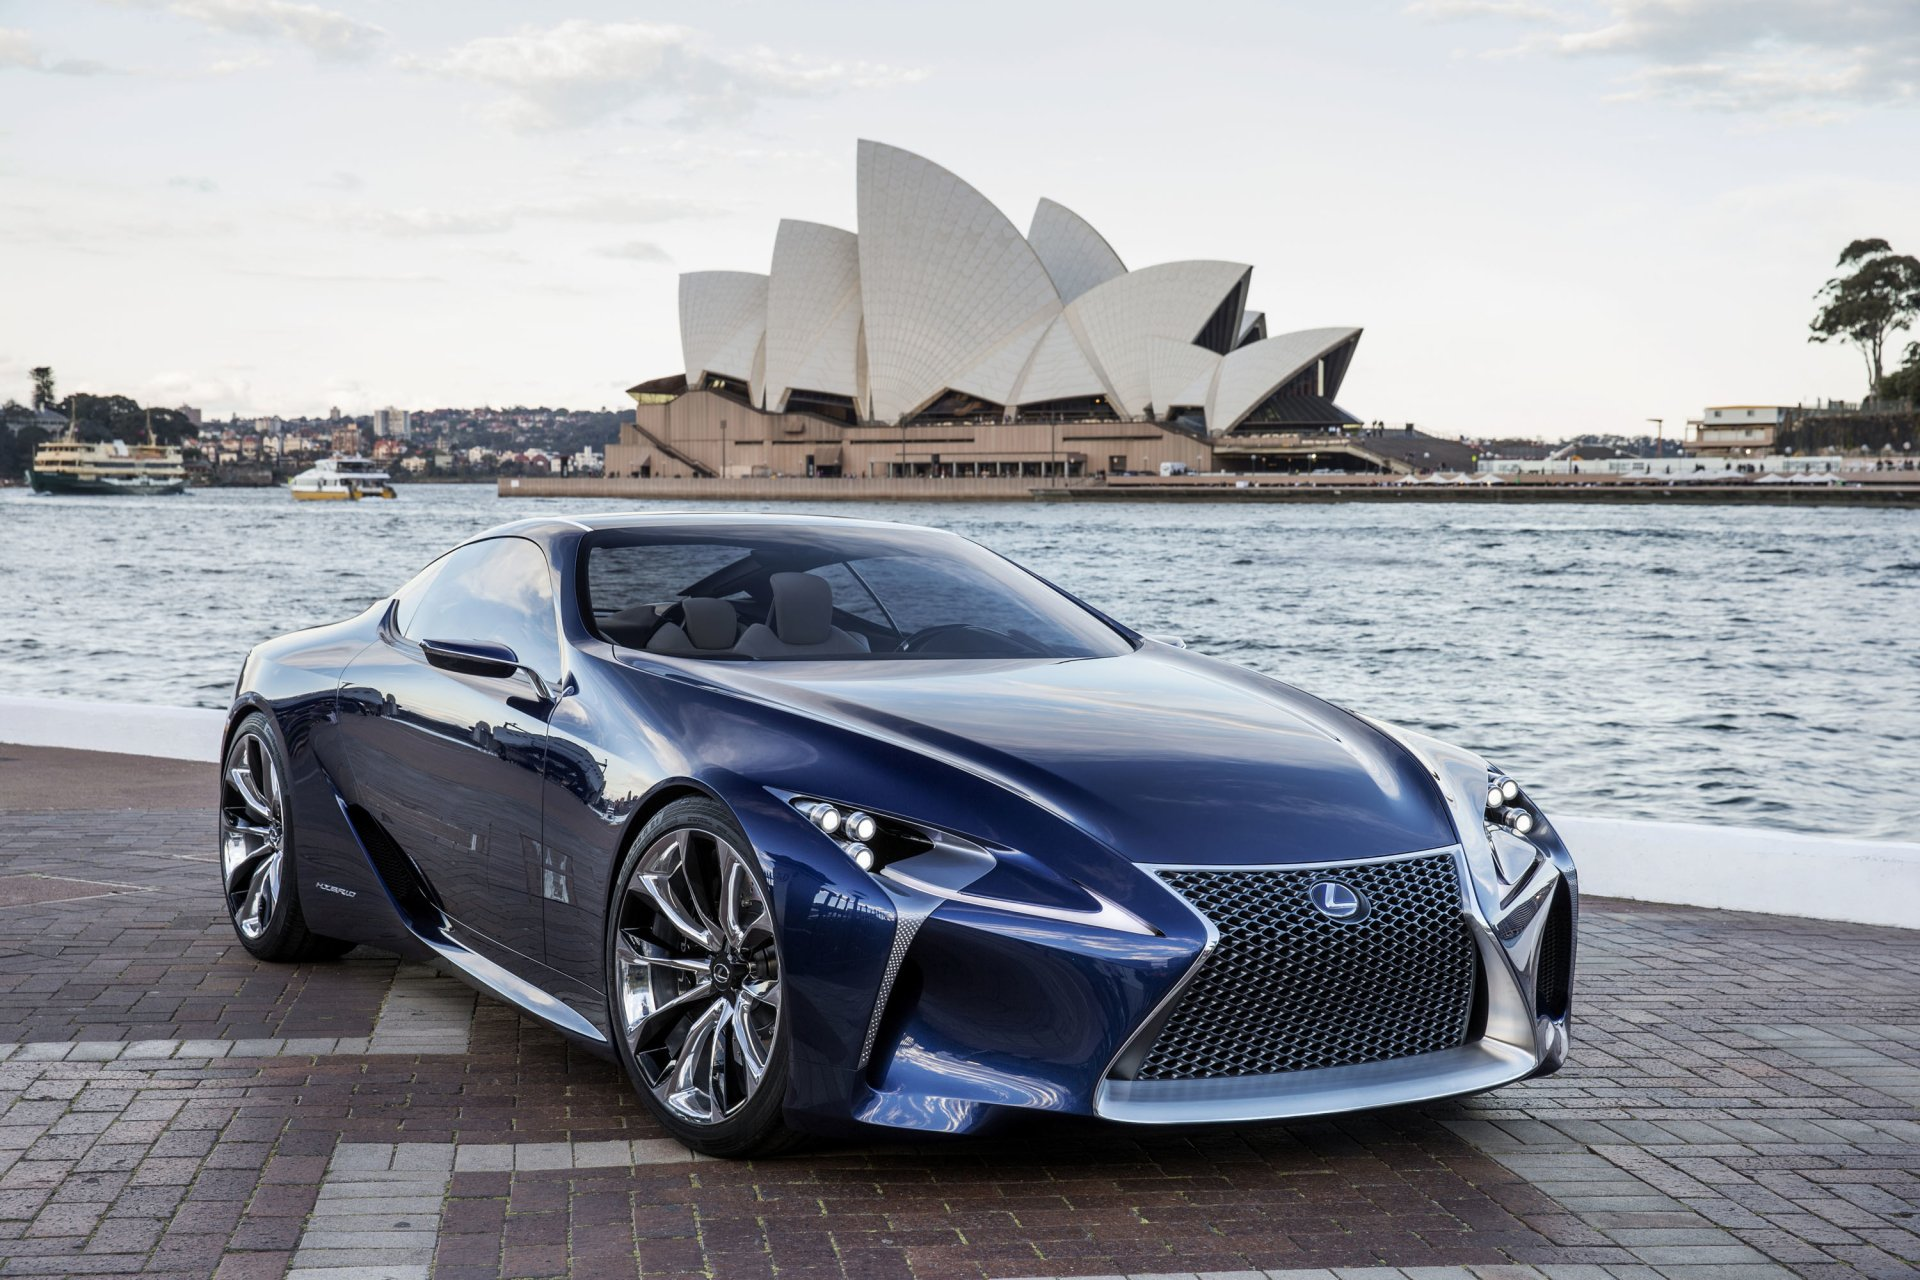 Black Lexus Lc 500 Wallpaper